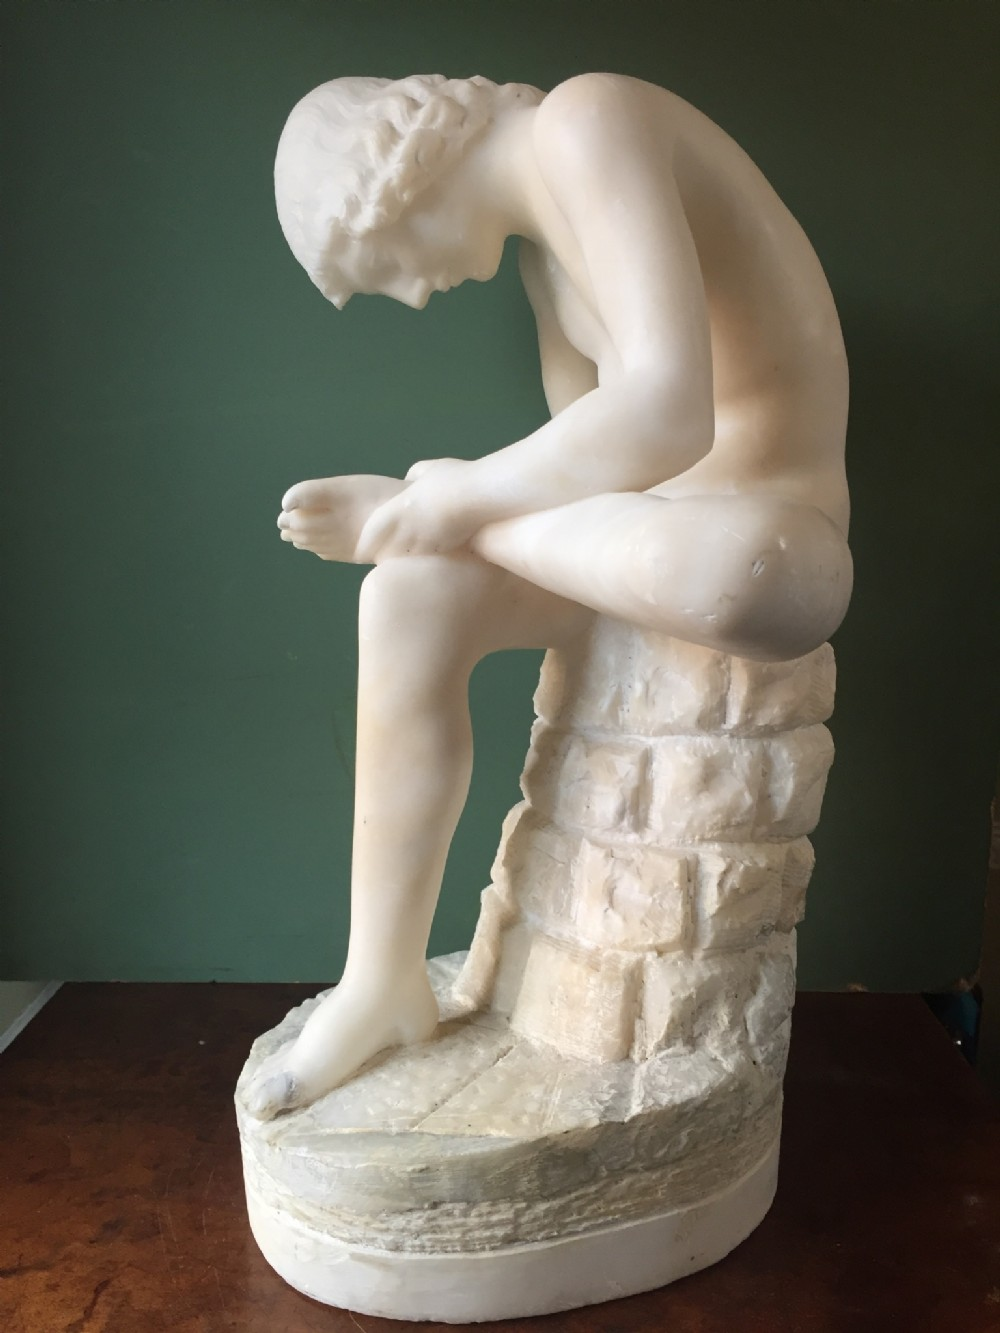 late c19th italian carved alabaster 'grand tour' souvenir sculpture after the antique of spinario or the thorn puller